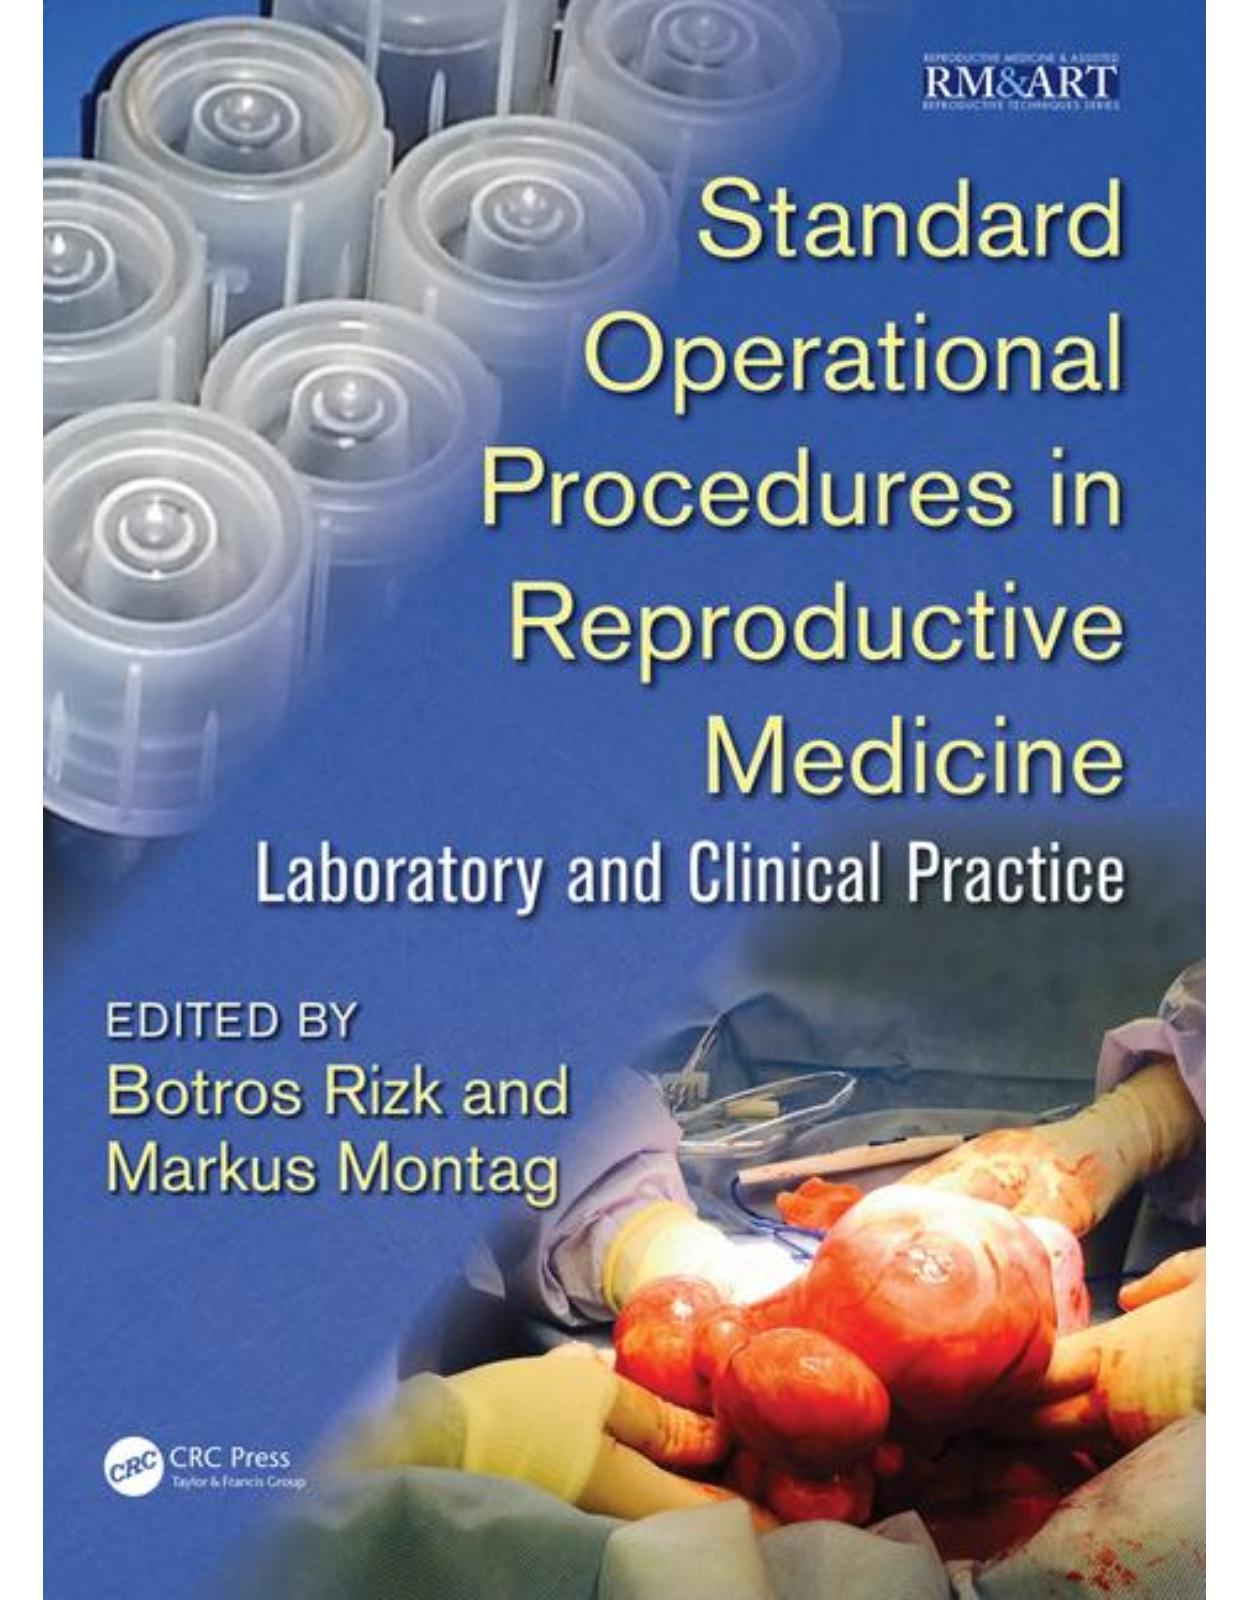 Standard Operational Procedures in Reproductive Medicine: Laboratory and Clinical Practice